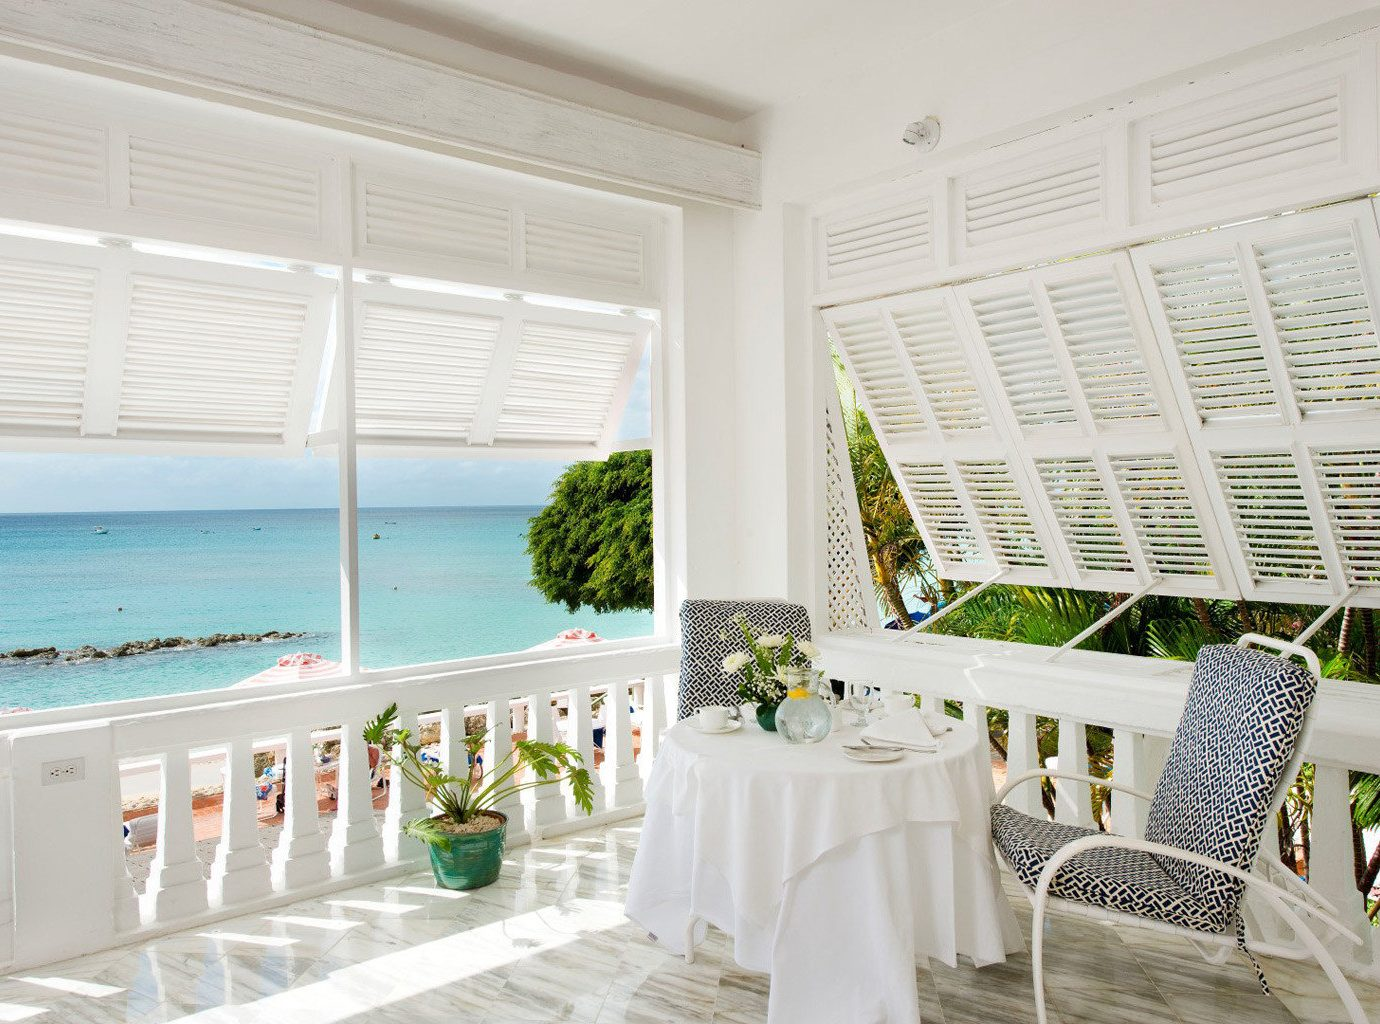 Balcony Beach Beachfront Country Elegant Island Lounge Nature Outdoors Scenic views Terrace Trip Ideas Waterfront window indoor room property interior design white estate home window covering real estate porch furniture